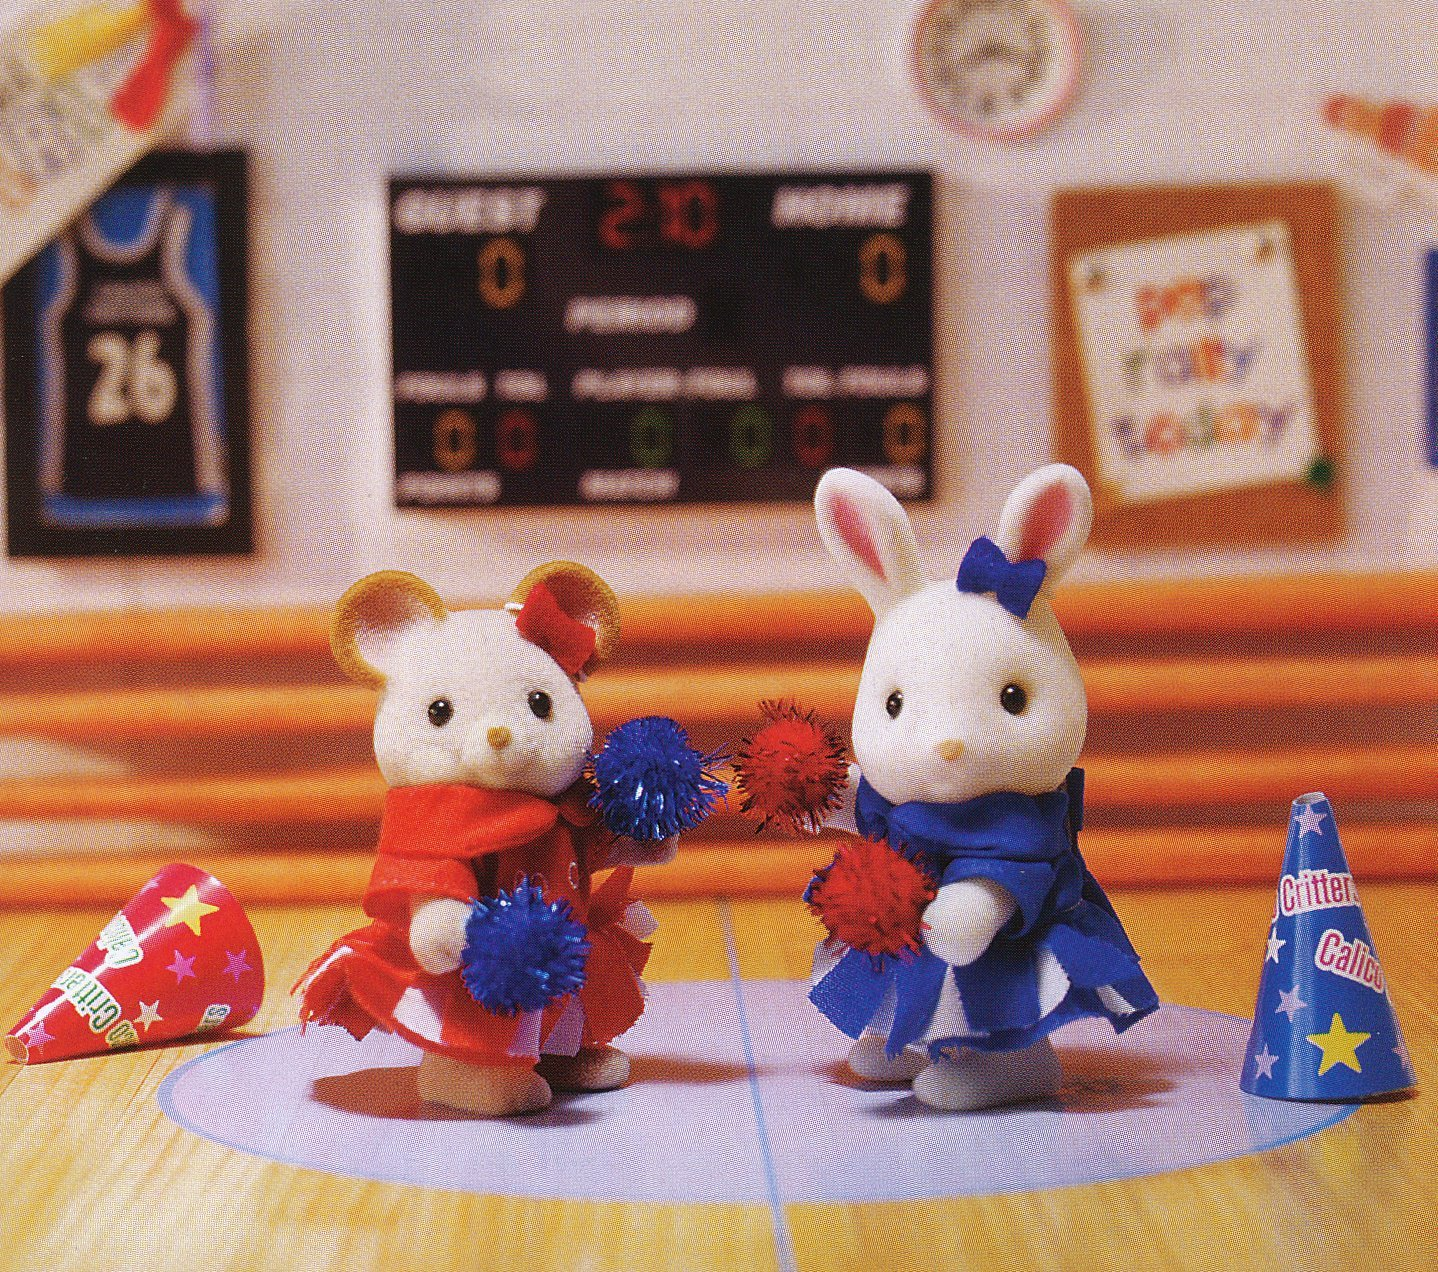 Calico Critters, A Big Cheer For Cloverleaf Corners